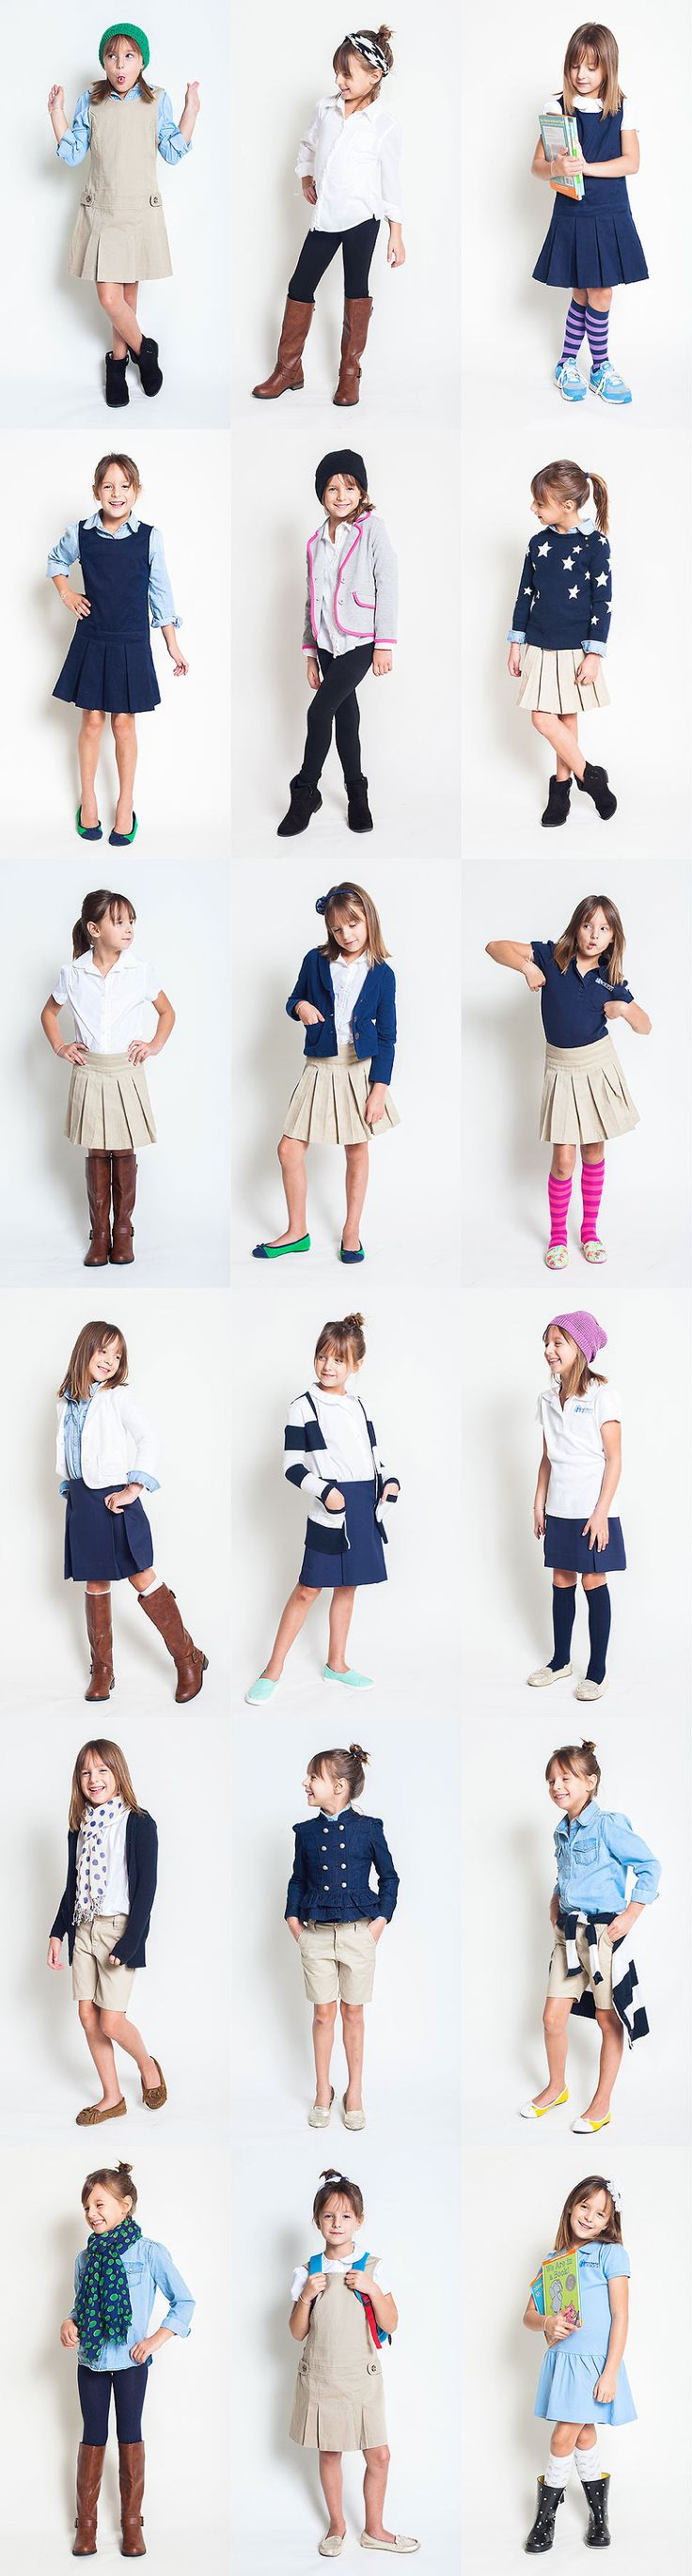 alana-school-uniform-project 2